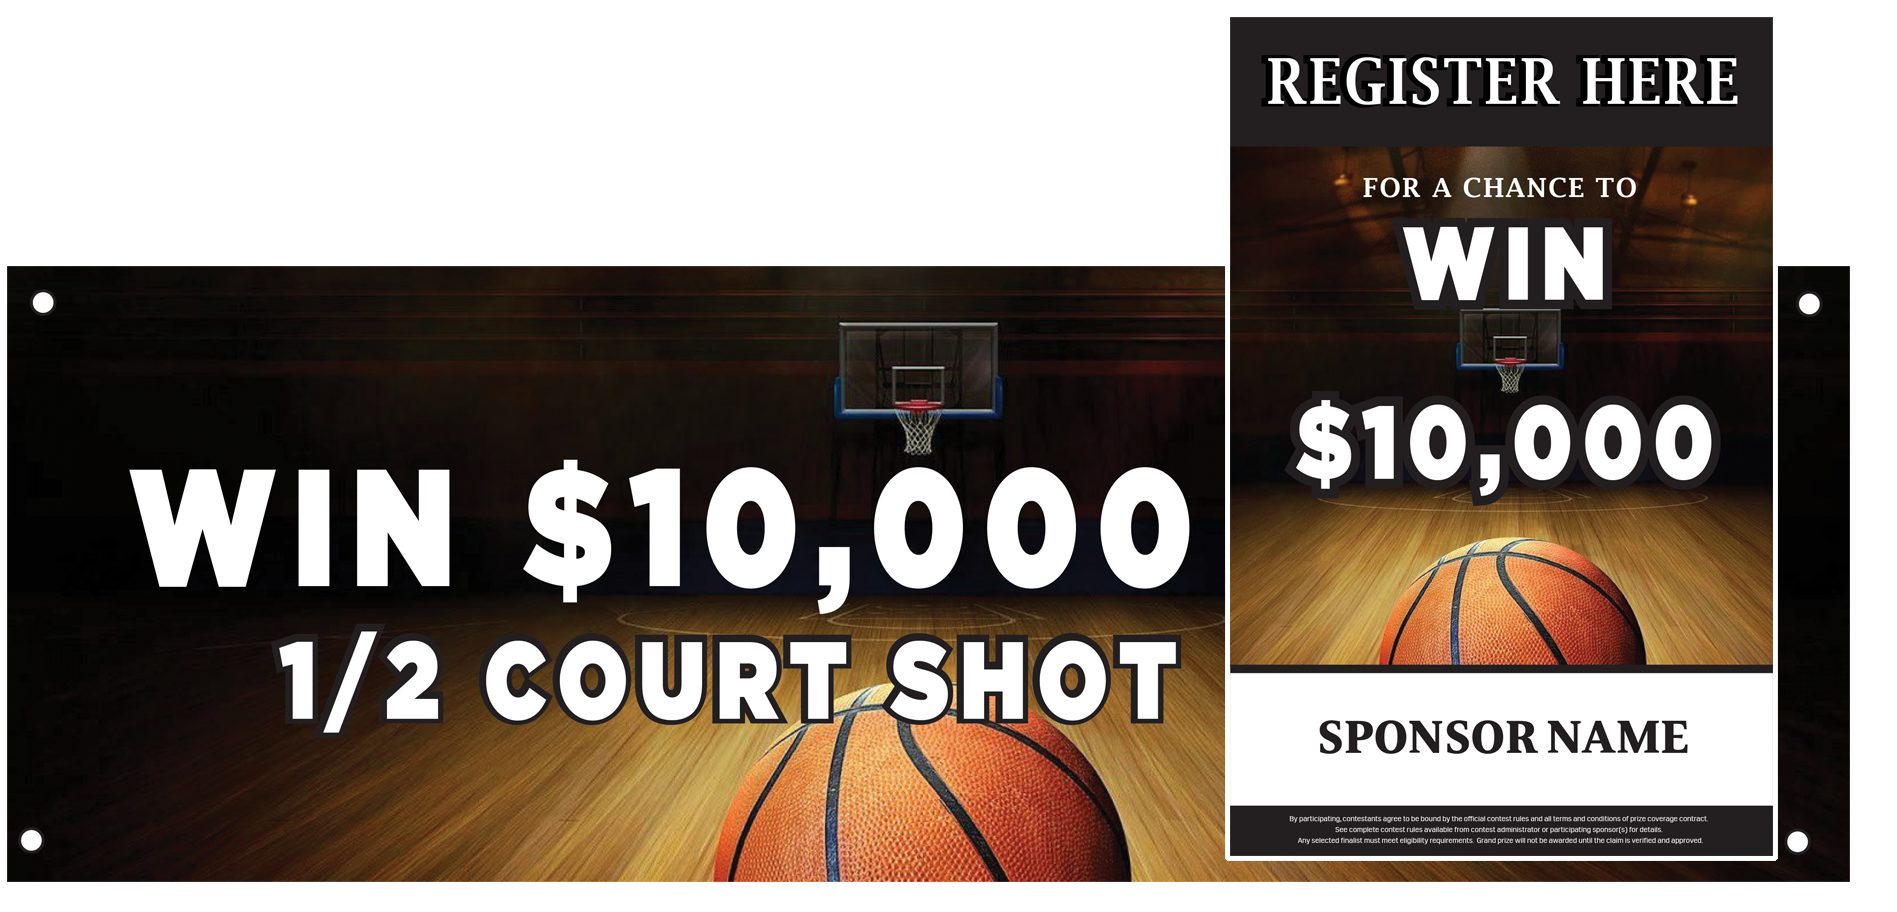 Half Court Shot - Grand Prize Promotions